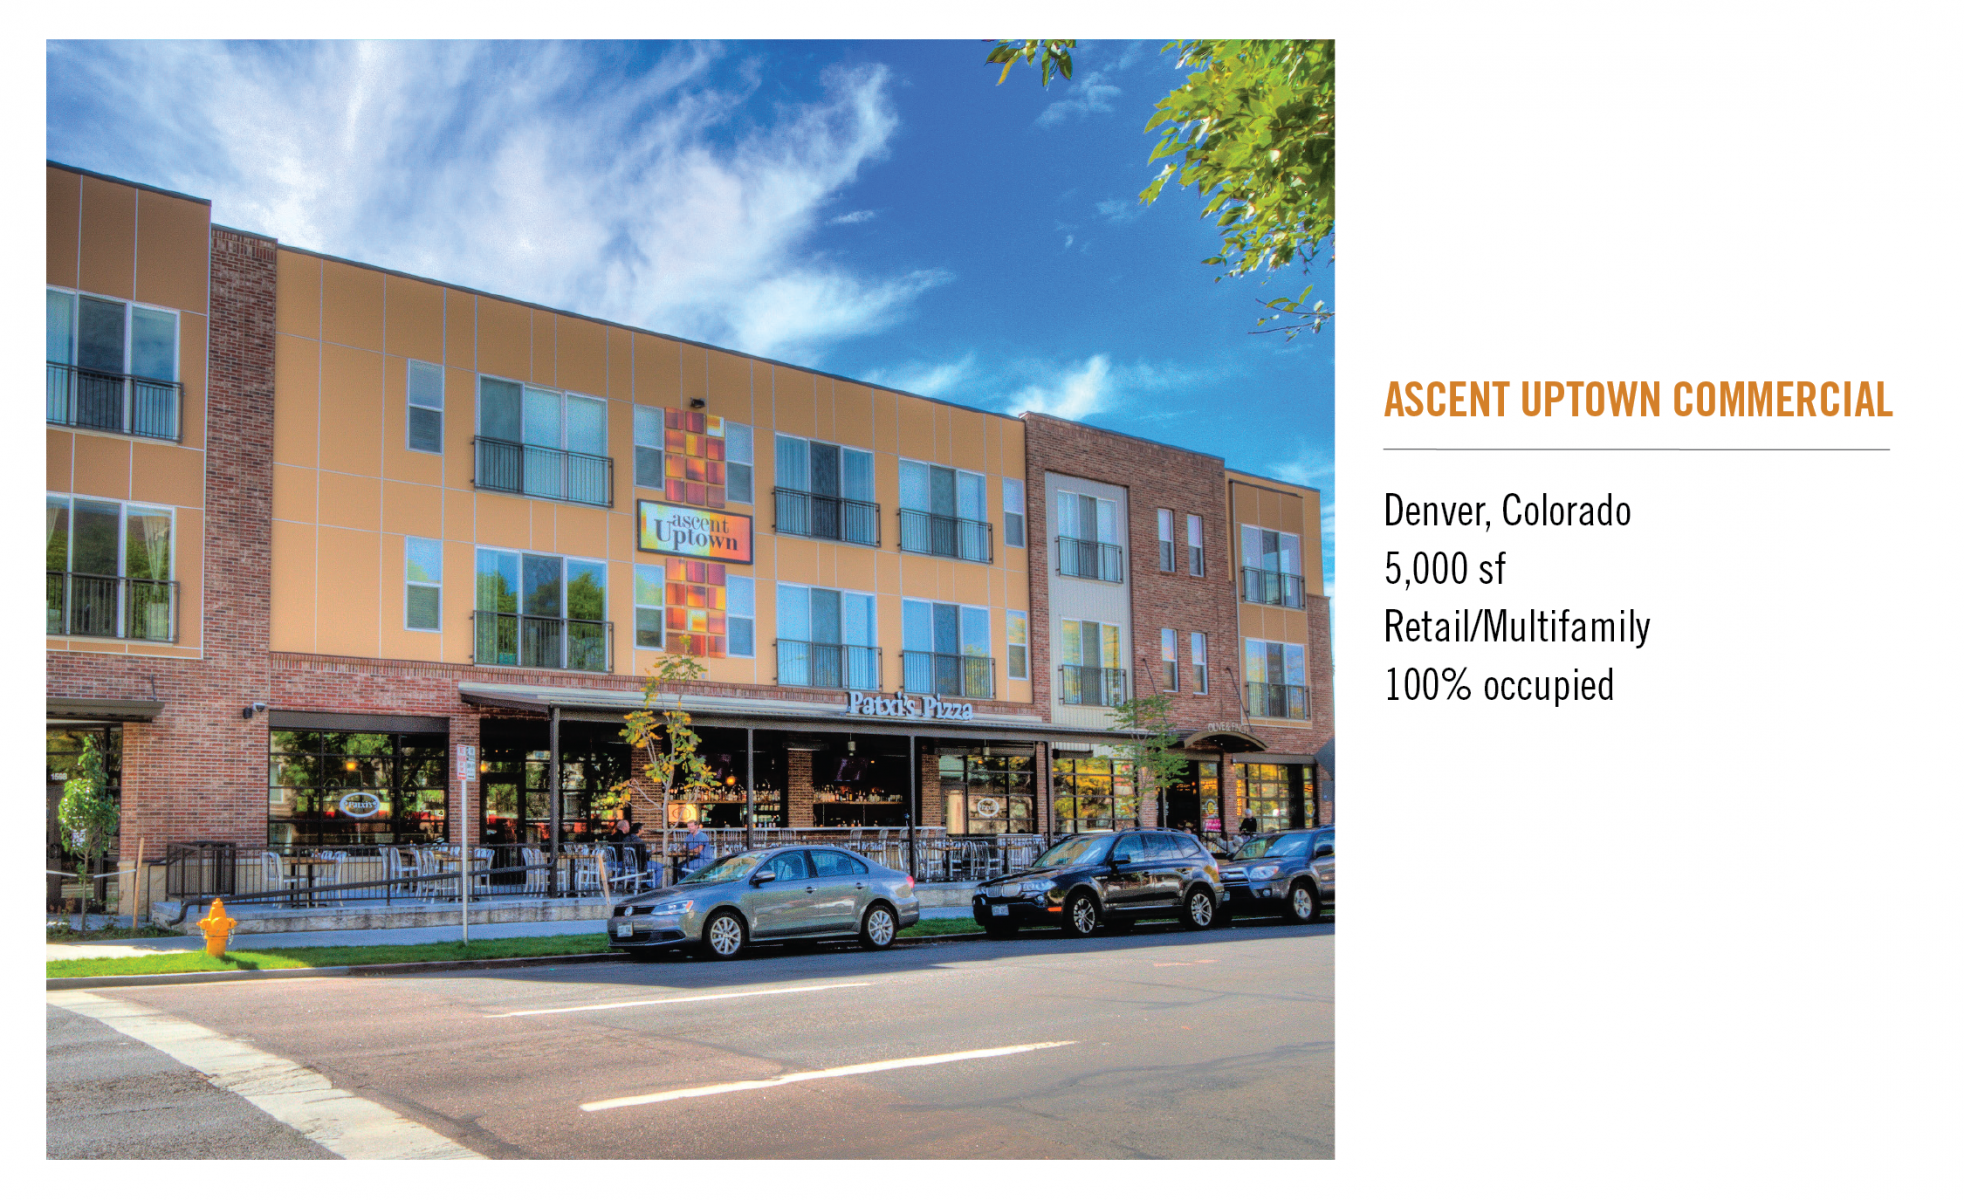 Ascent Uptown Commercial Managed by Wheelhouse Commercial